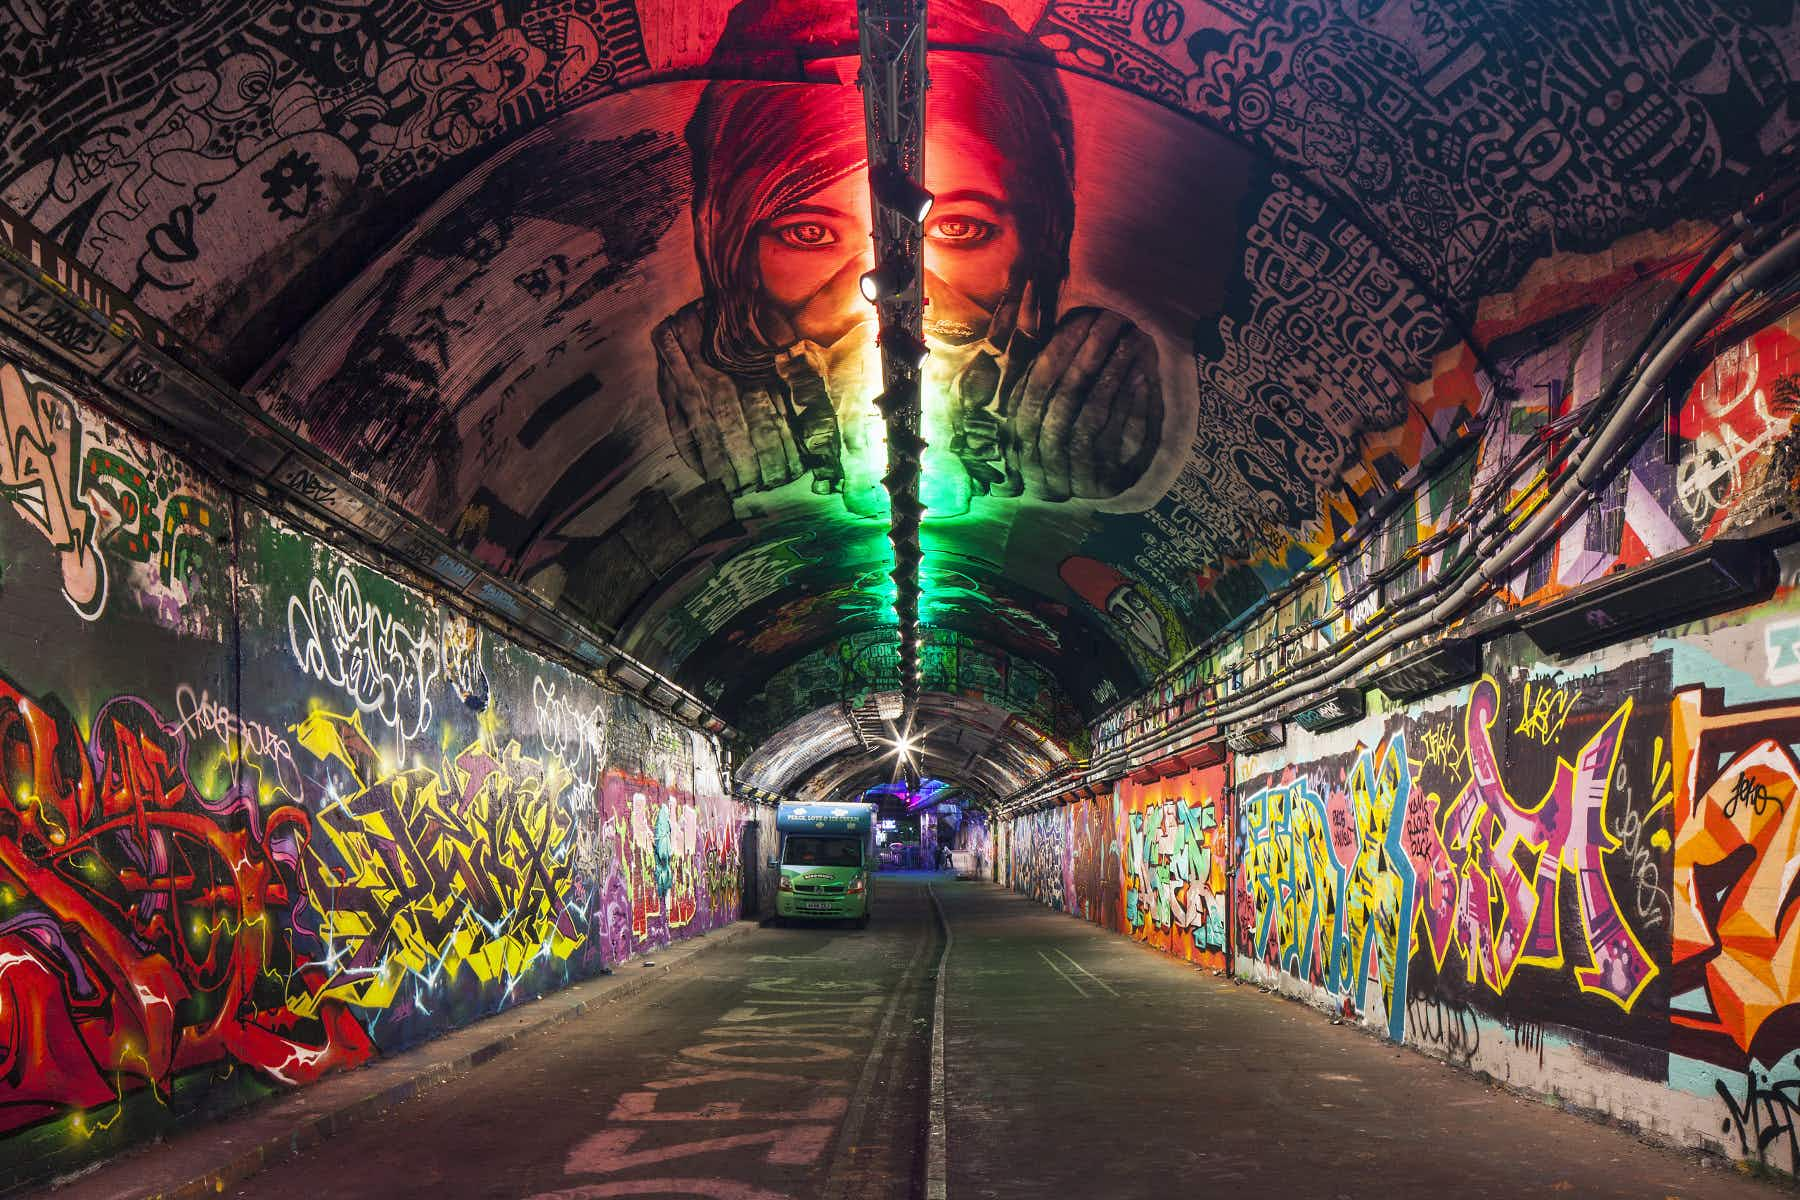 London's famous graffiti tunnel to become a focal point of a regeneration project